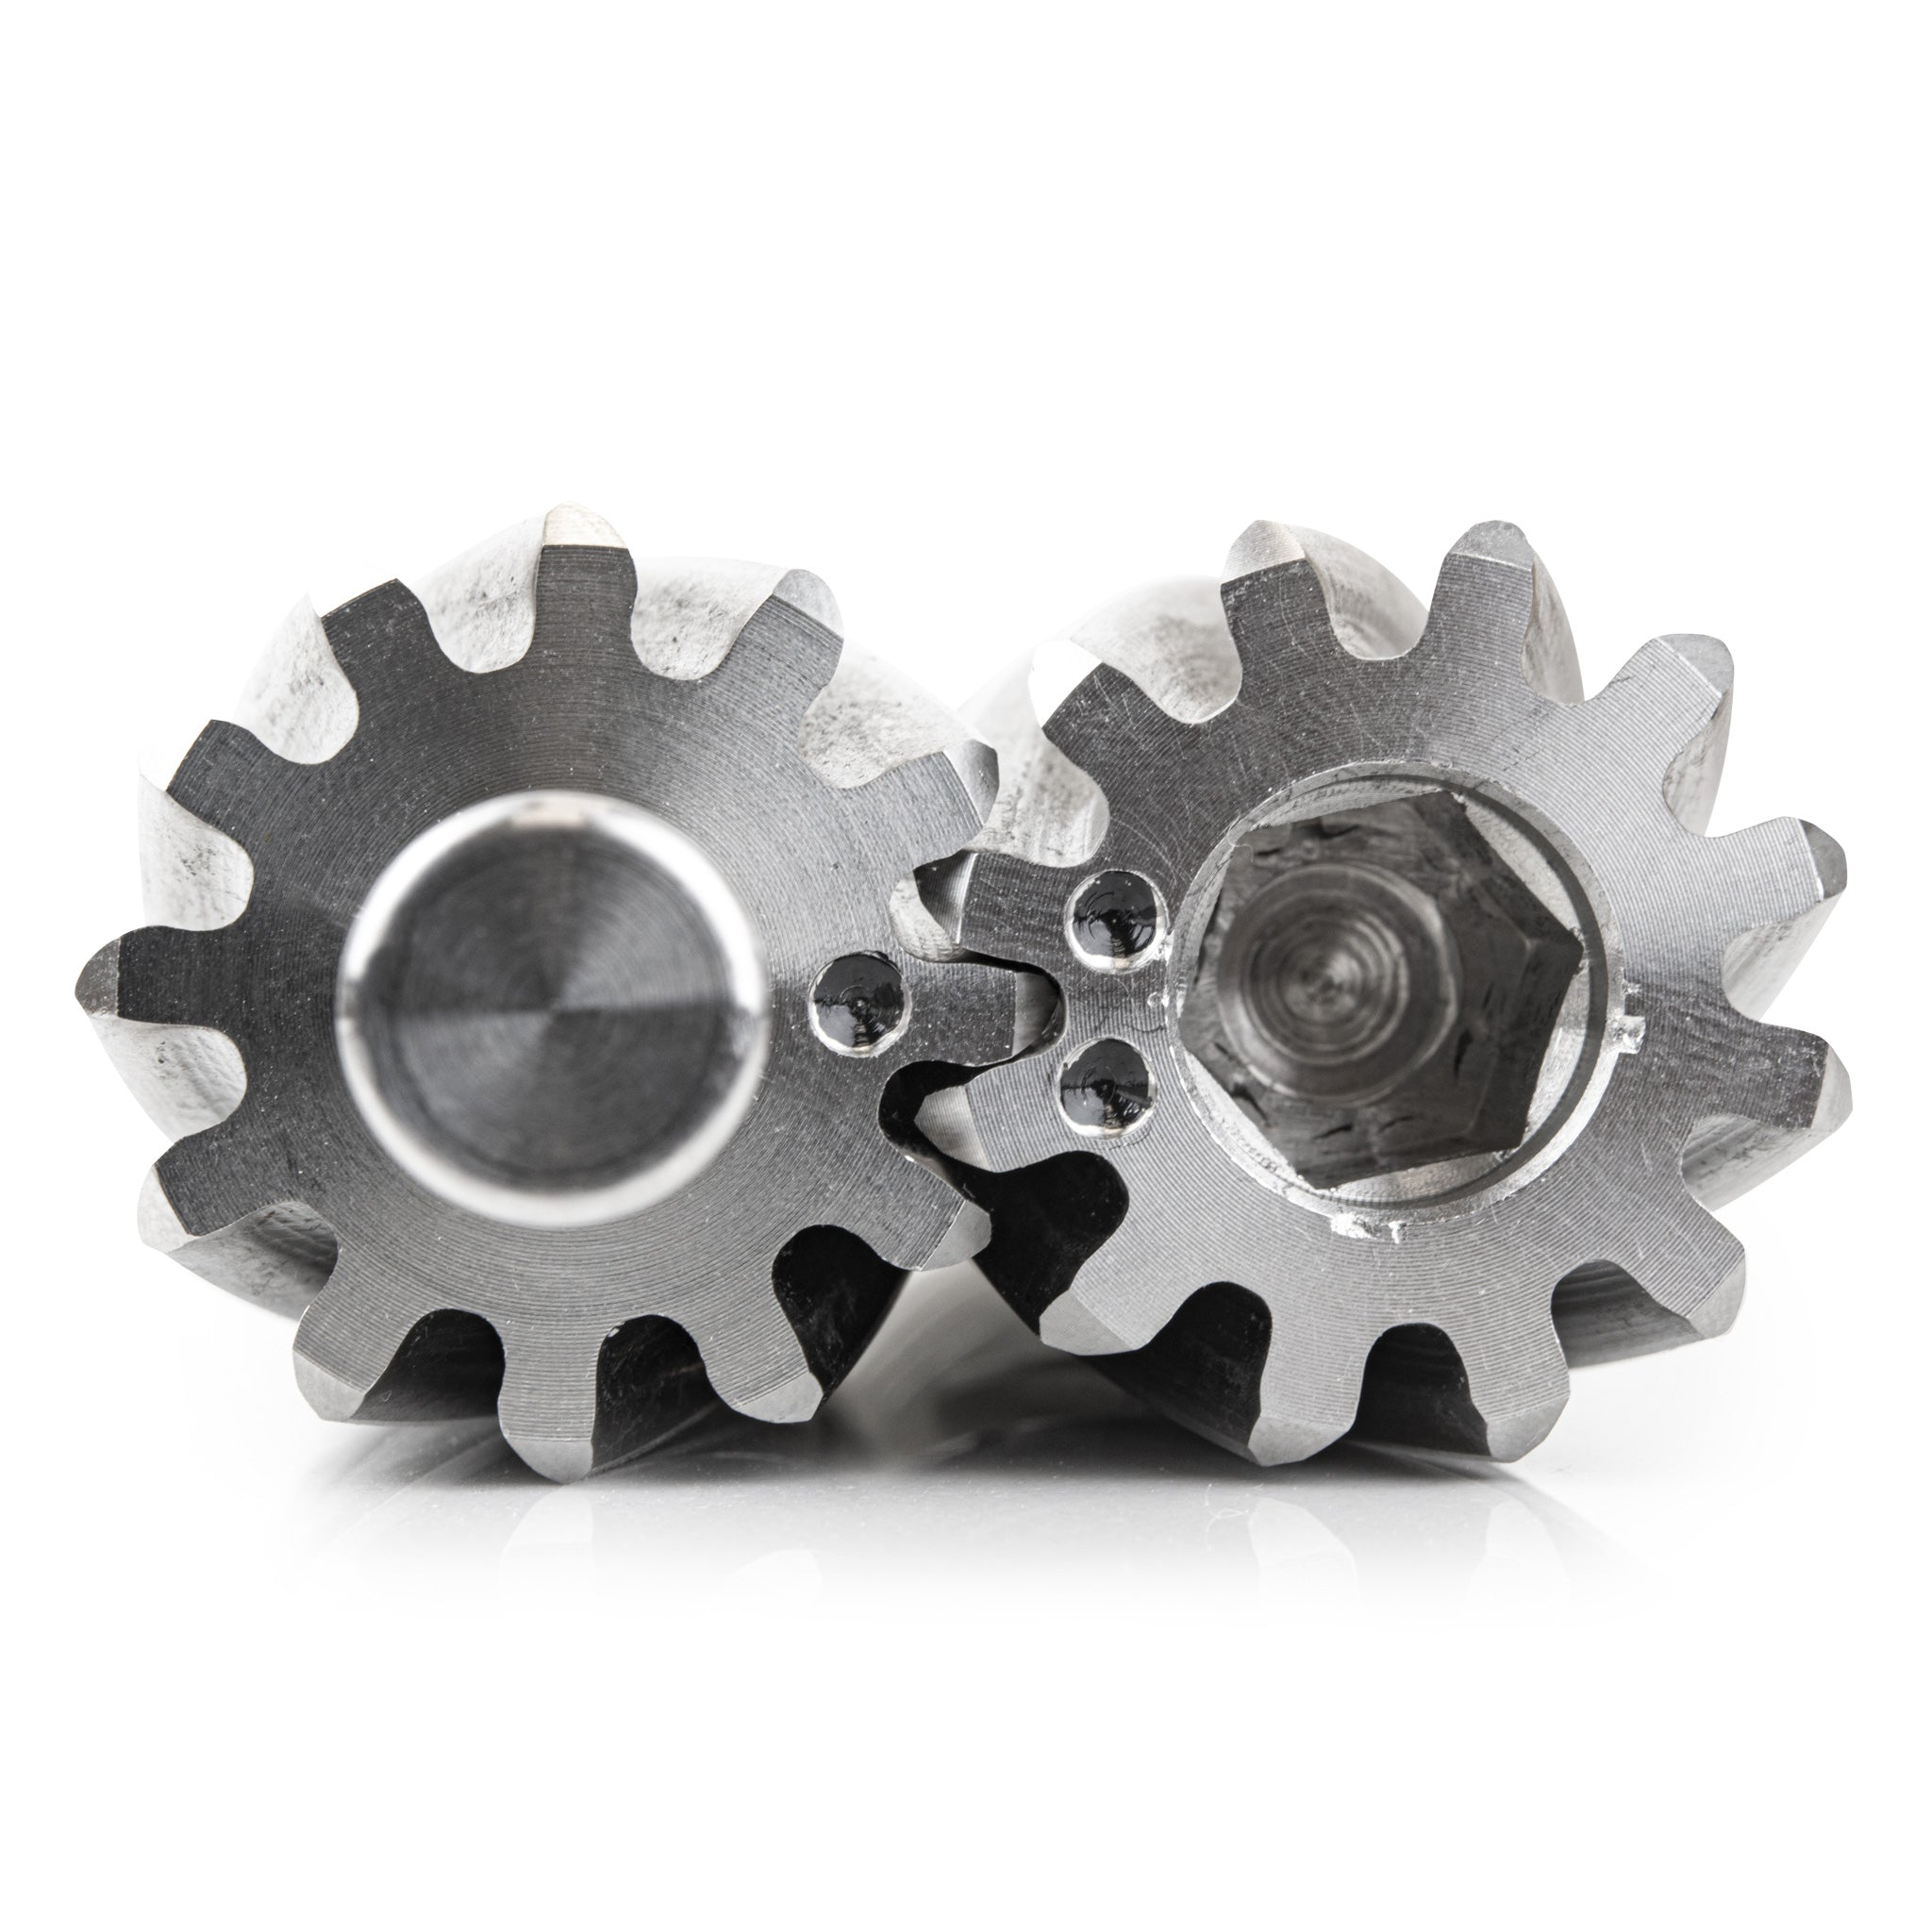 Greenstar® Pro/Elite All-Stainless Steel Twin Gear Set